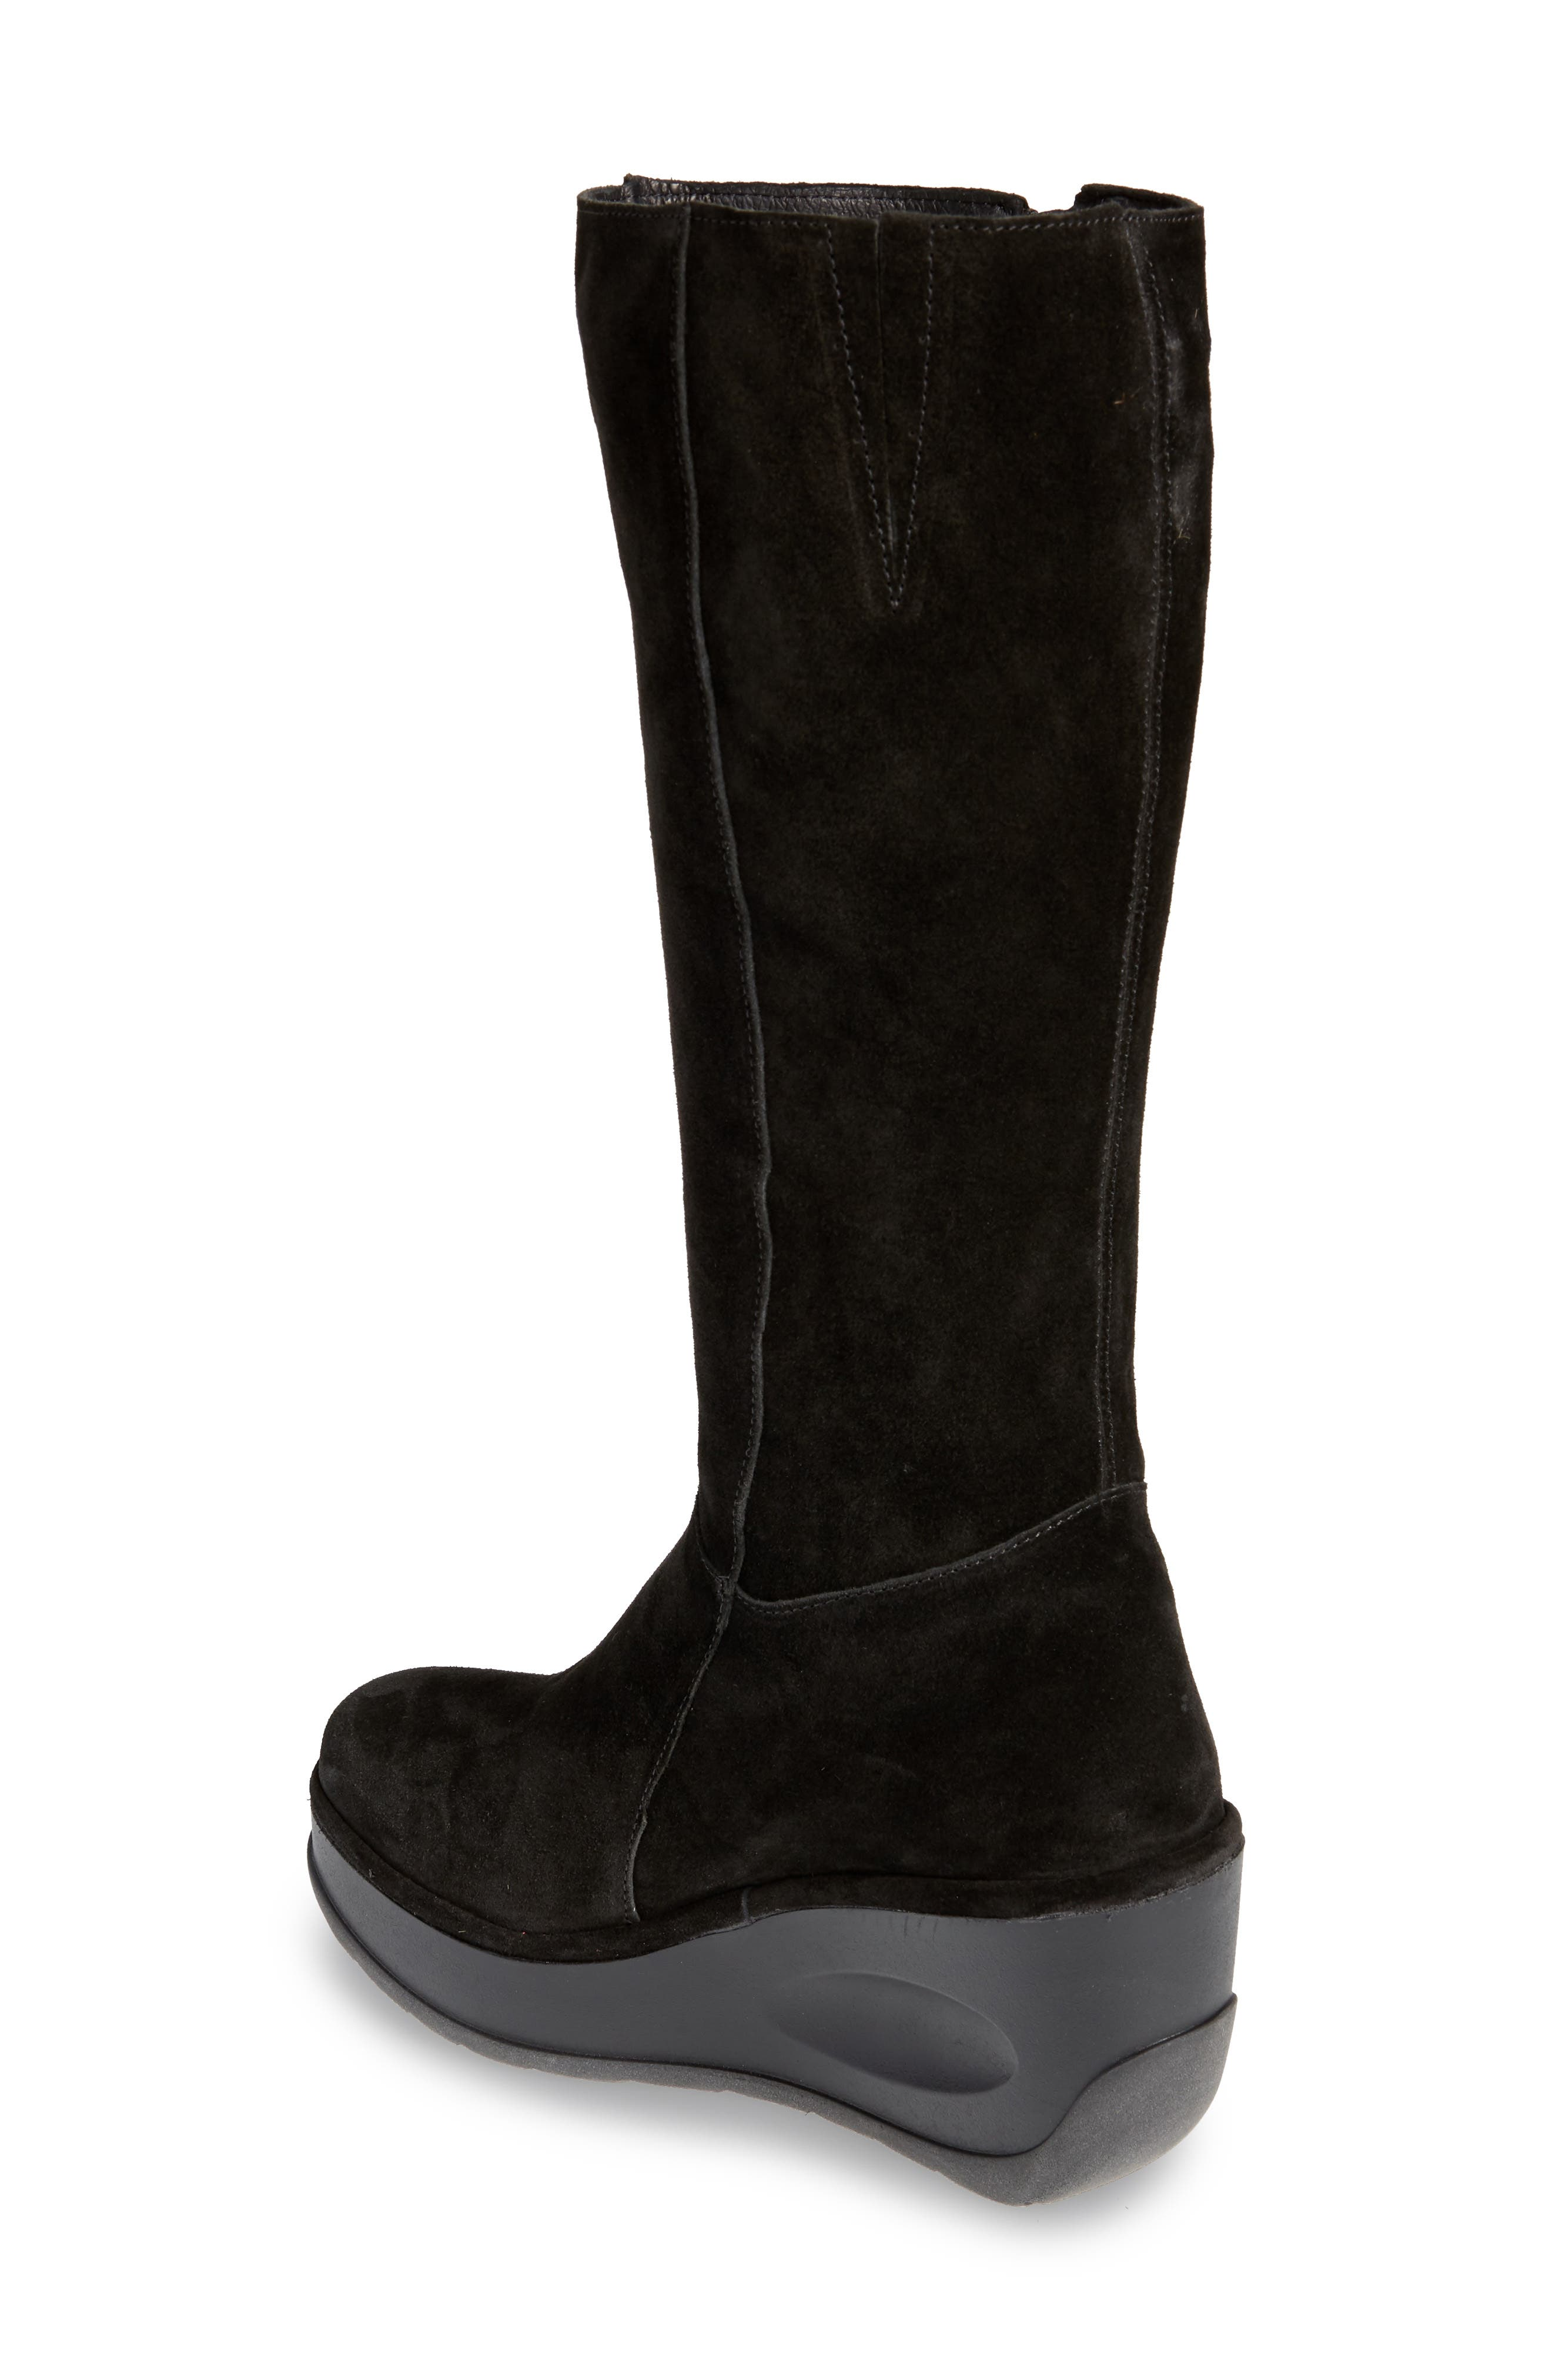 Jate Wedge Boot,                             Alternate thumbnail 2, color,                             BLACK OIL SUEDE